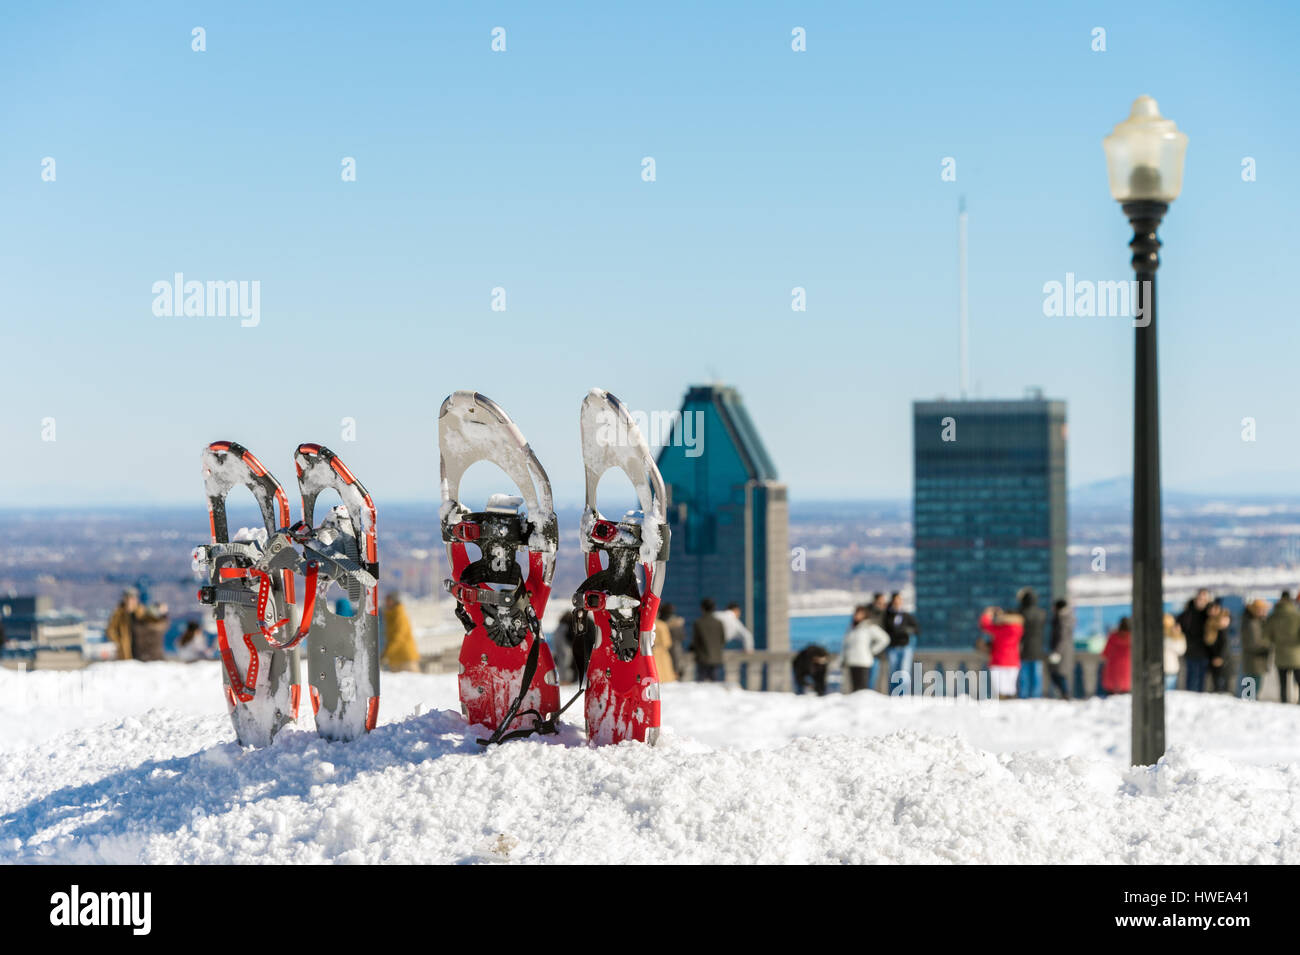 Snowshoes in snow with Montreal skyline in the distance - Stock Image